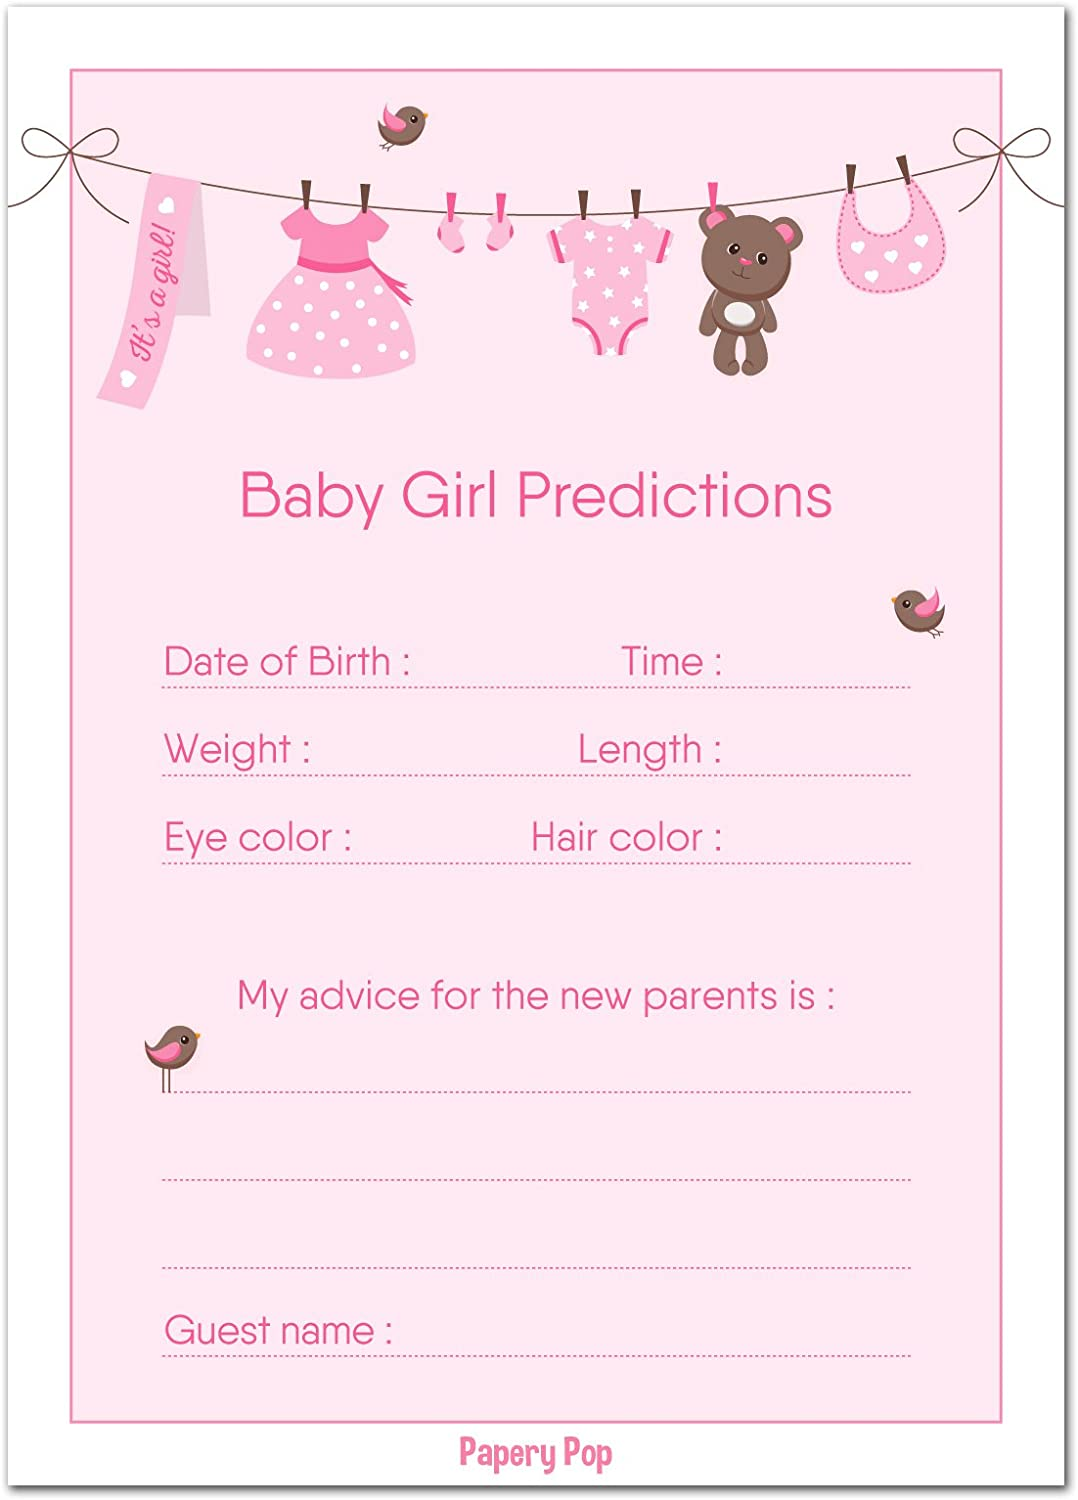 30 Baby Shower Prediction and Advice Cards for The Baby Girl - Baby Shower Games Decorations Activities Supplies Invitations Papery Pop